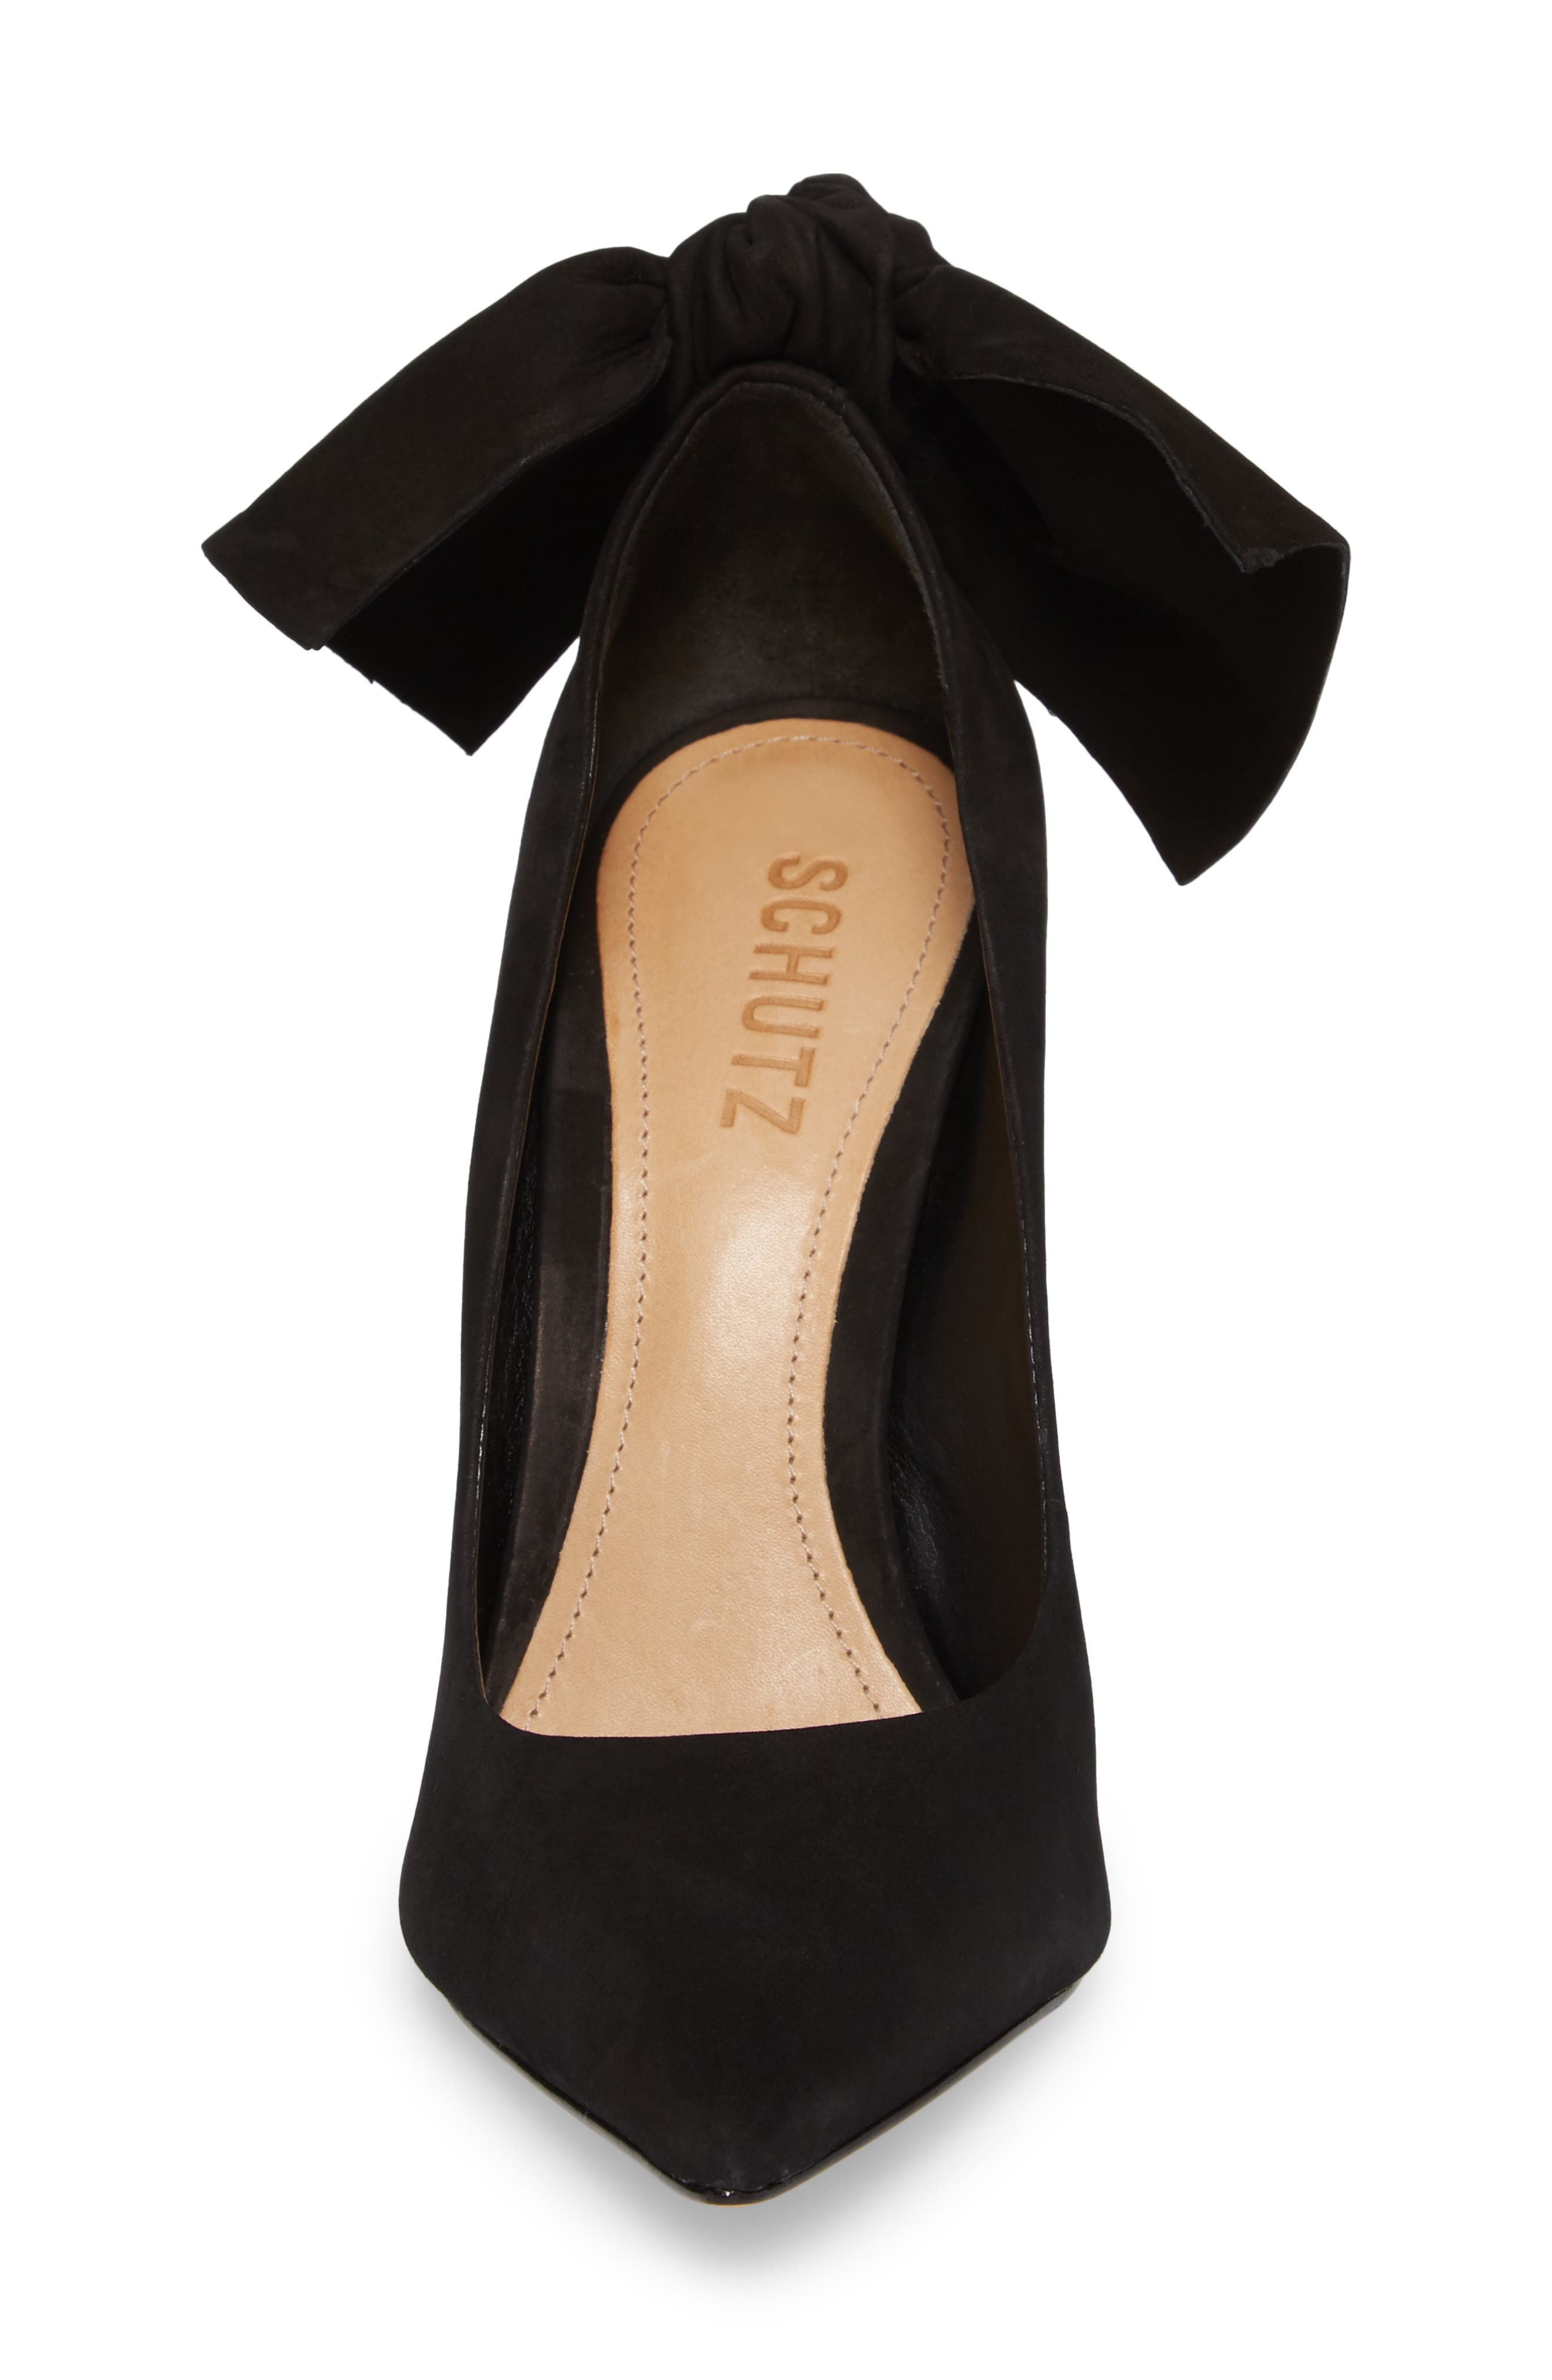 SCHUTZ,                             Blasiana Bow Pump,                             Alternate thumbnail 4, color,                             001